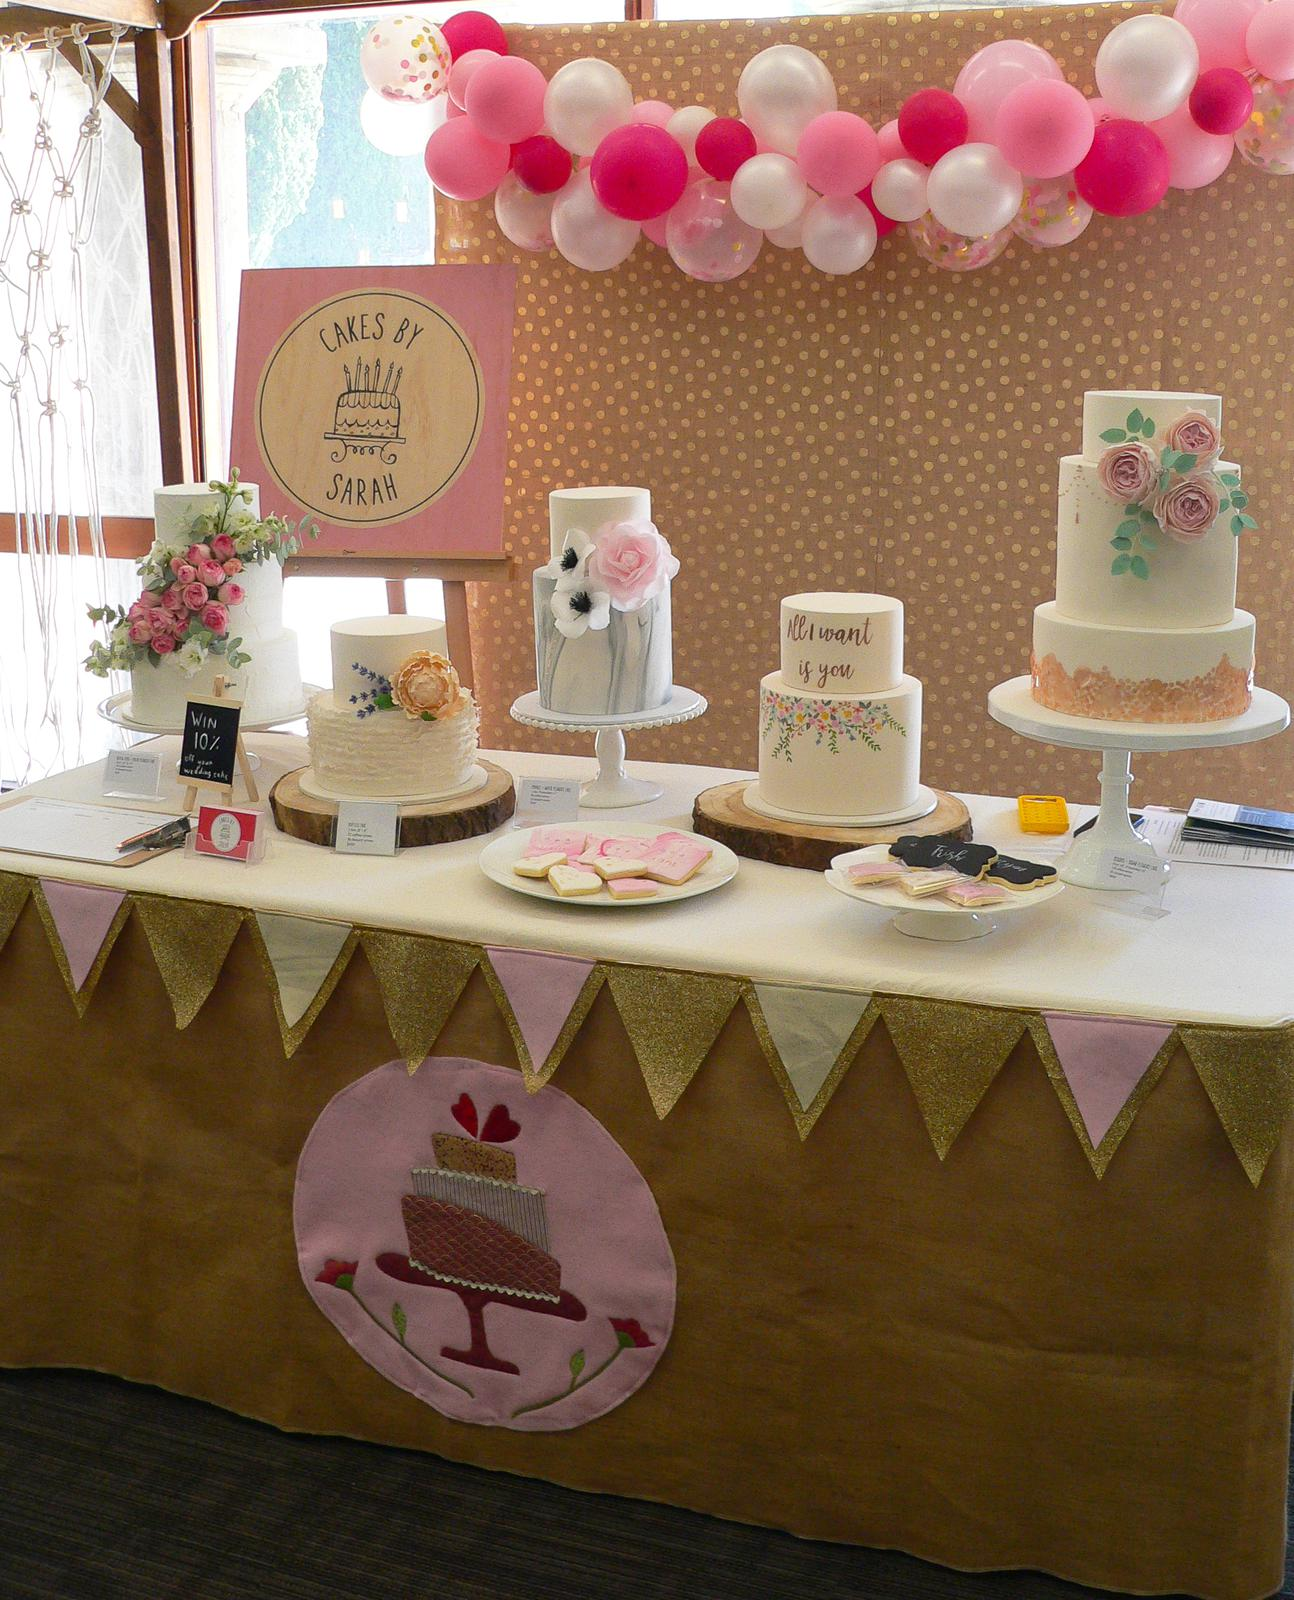 Cakes by Sarah stall